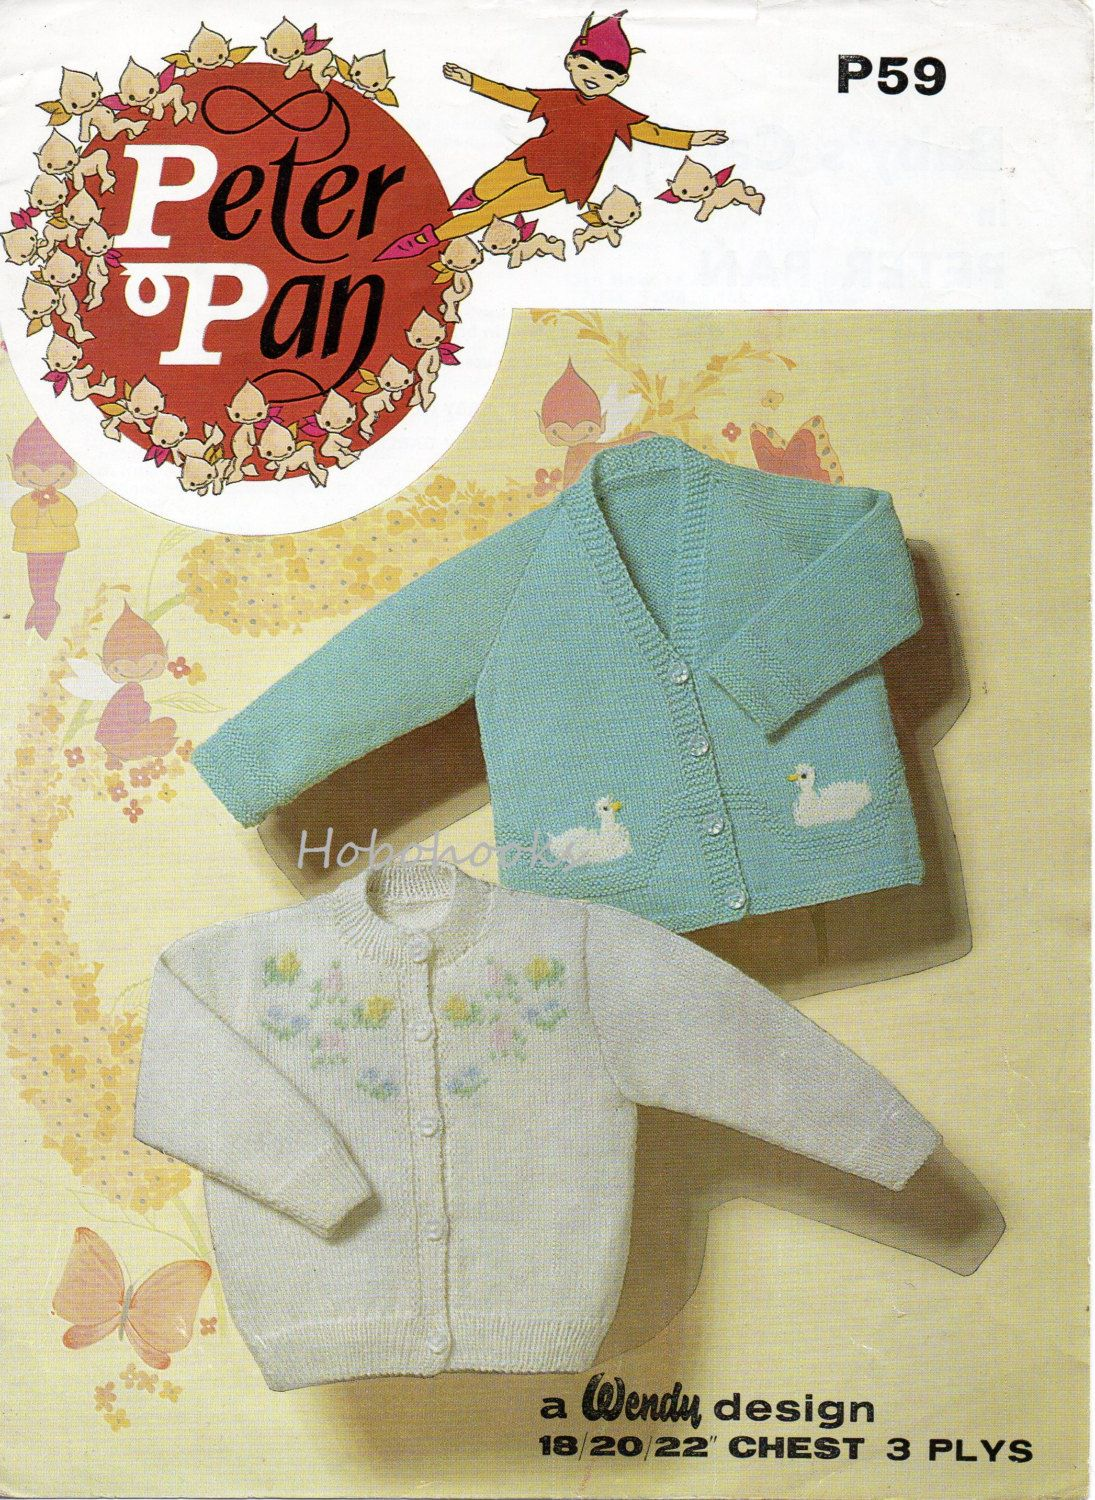 Baby knitting pattern baby cardigans toddler cardigans embroidered baby knitting pattern baby cardigans toddler cardigans embroidered flowers duck motif 3 ply cardigans 18 bankloansurffo Gallery